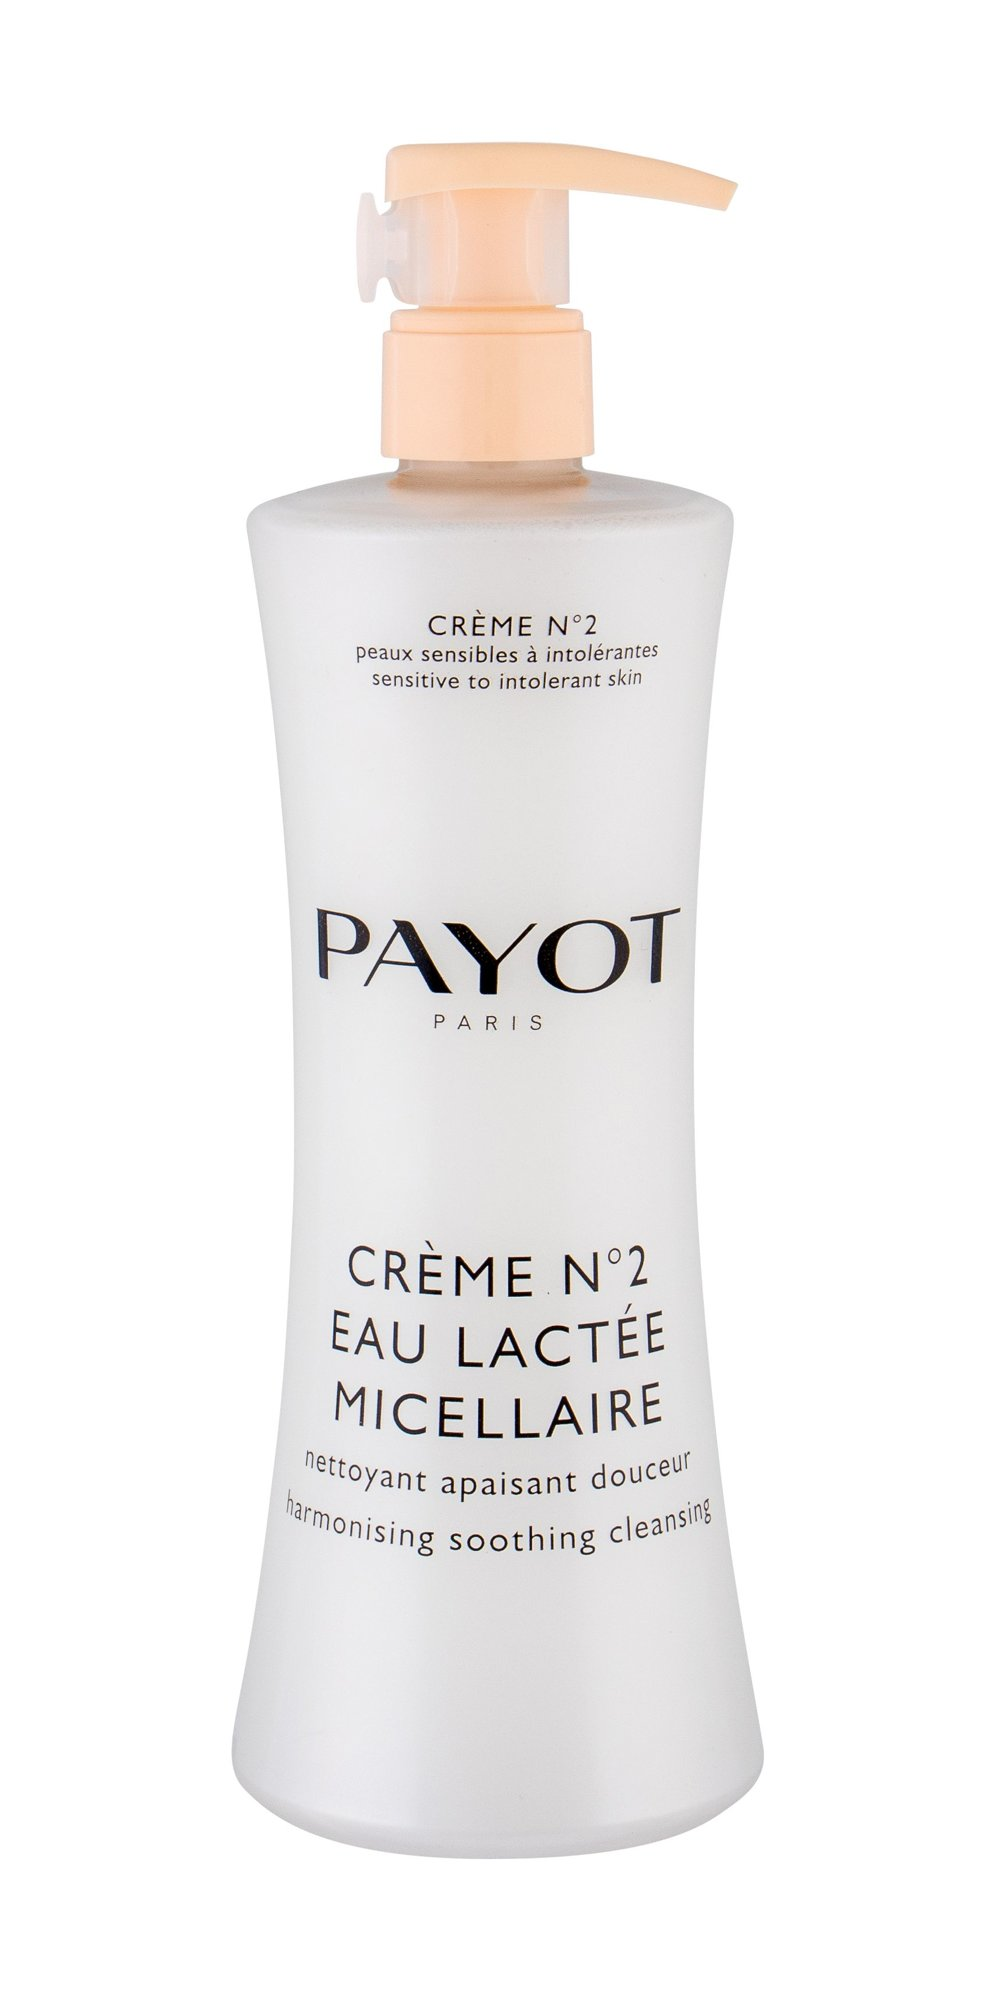 PAYOT Creme No2 Cleansing Milk 400ml